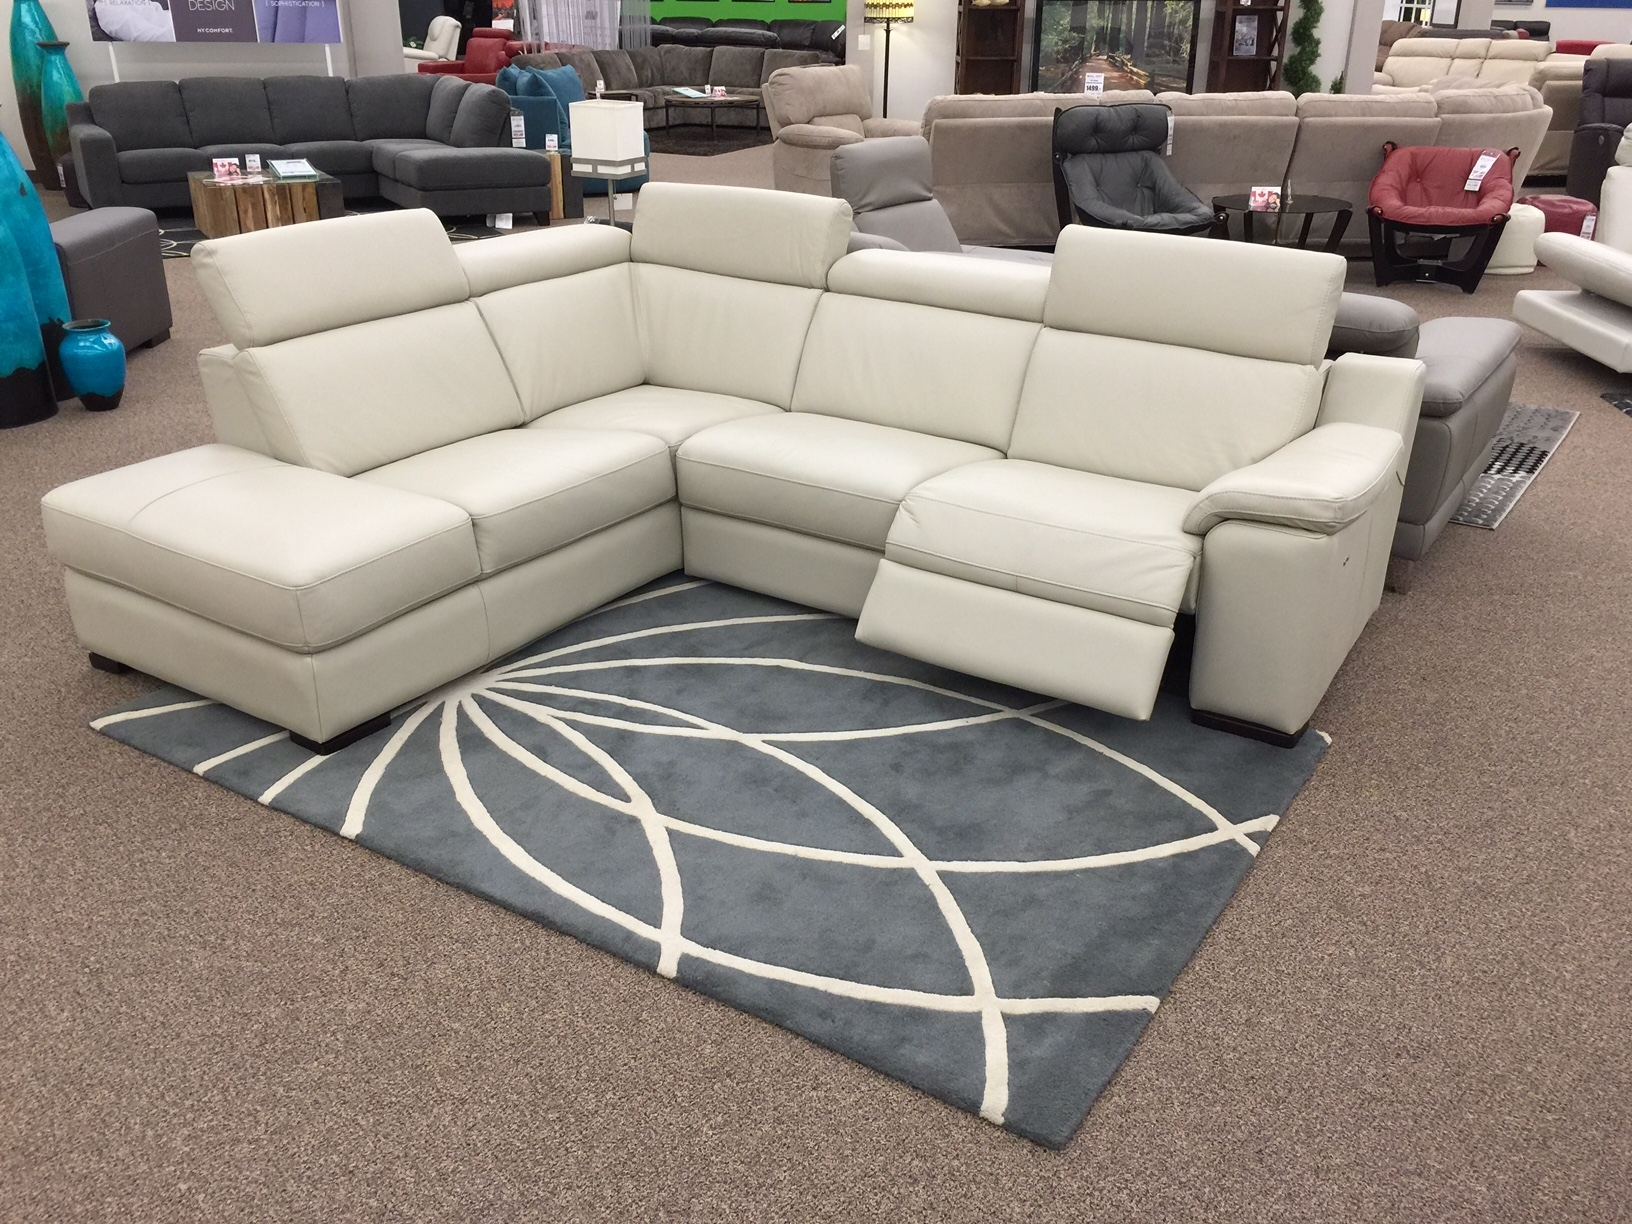 The Ashlynn Sectional Just Arrived At Sofa Land! This 100% Leather Regarding Sectional Sofas In Stock (View 9 of 10)